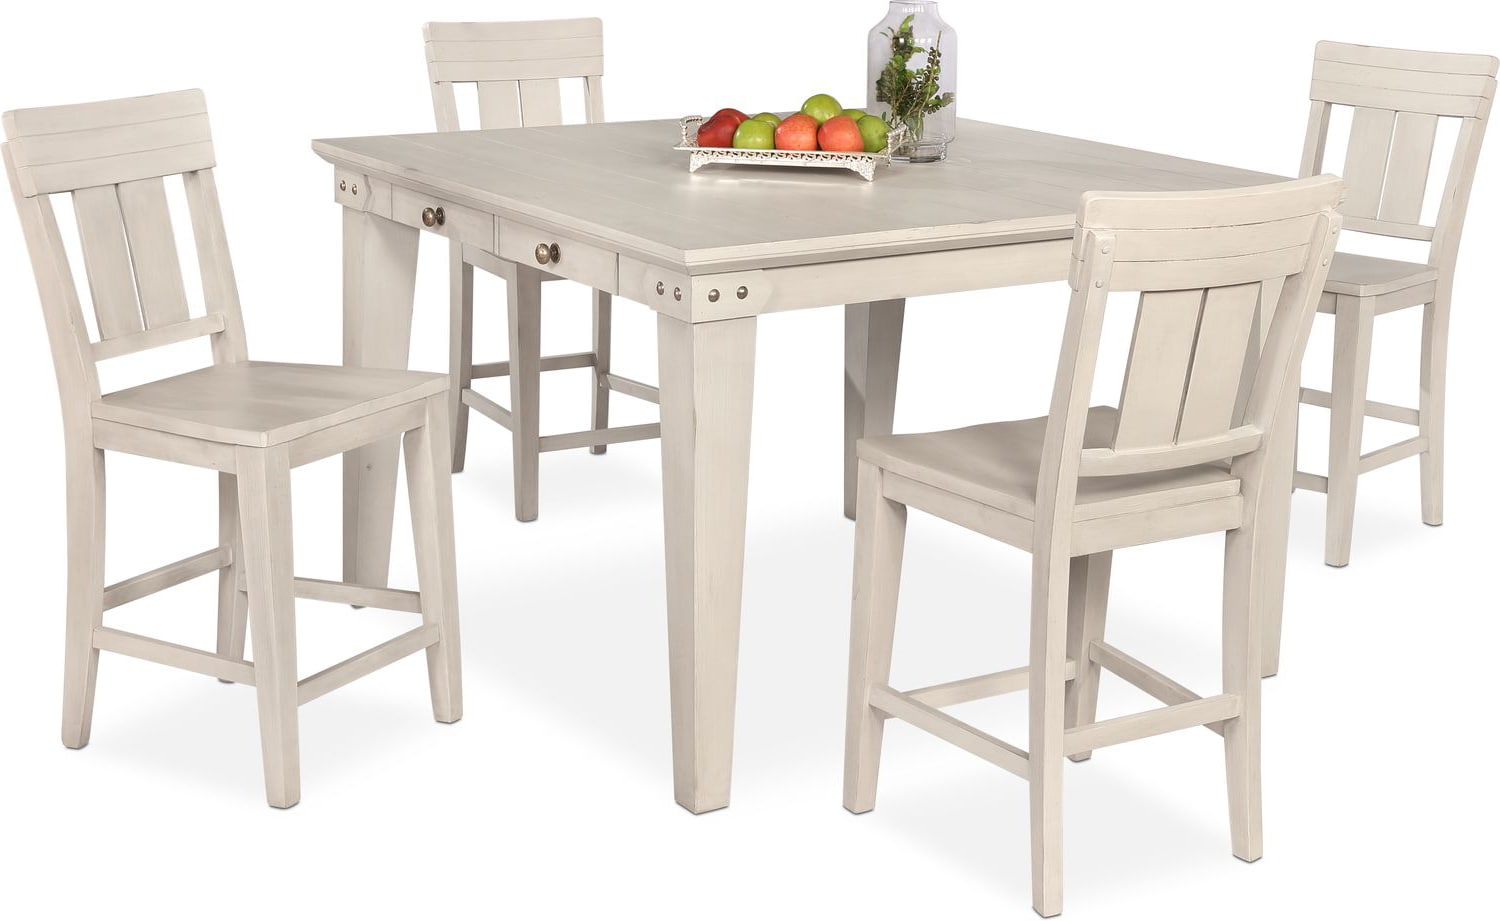 Dining Room Furniture - New Haven Counter-Height Dining Table and 4 Slat-Back Stools